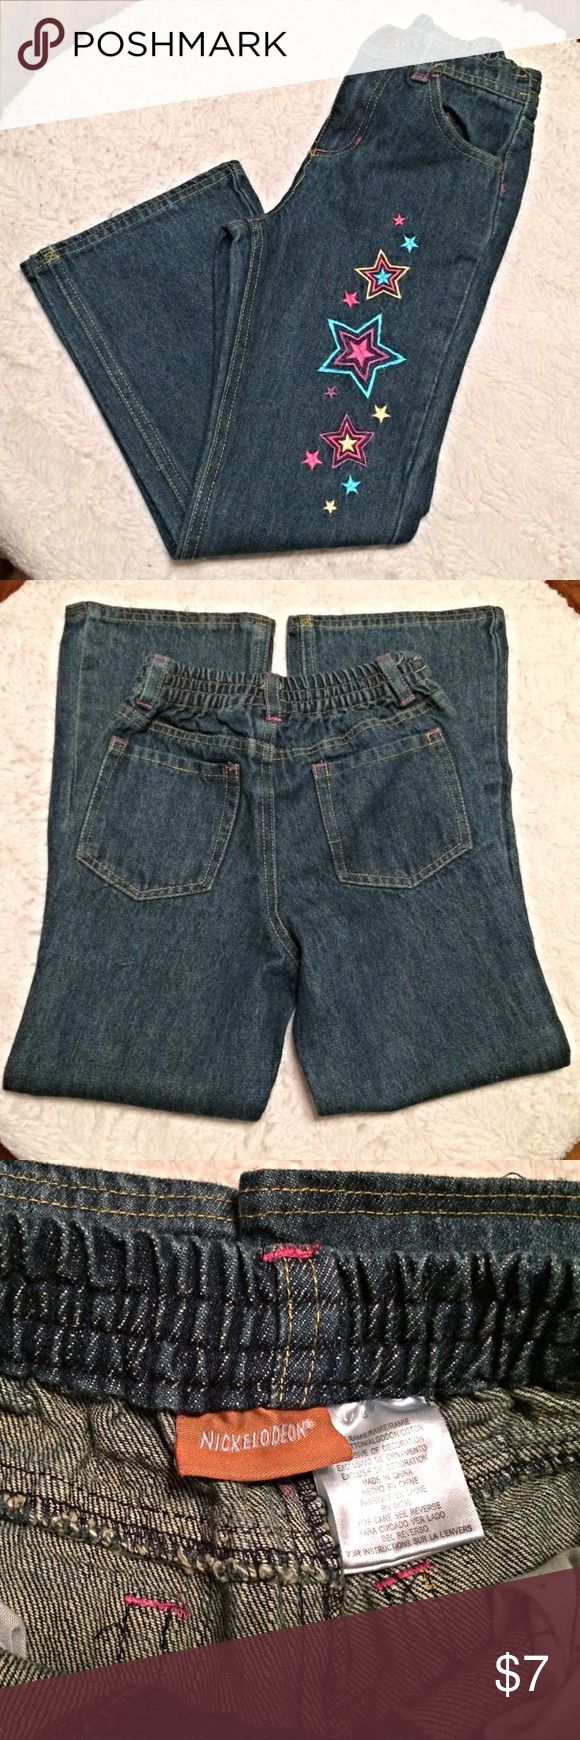 Nickelodeon Girls Star Jeans Girls size 6 jeans. Elastic waist band. Features pink, blue and yellow stars. Nickelodeon Bottoms Jeans